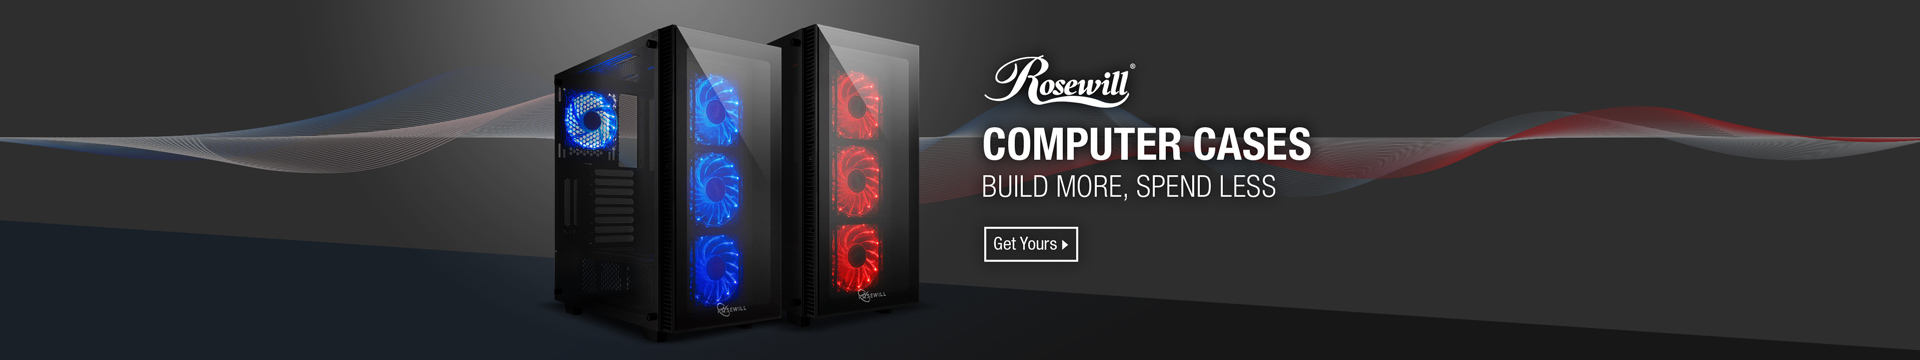 COMPUTER CASES BUILD MORE, SPEND LESS